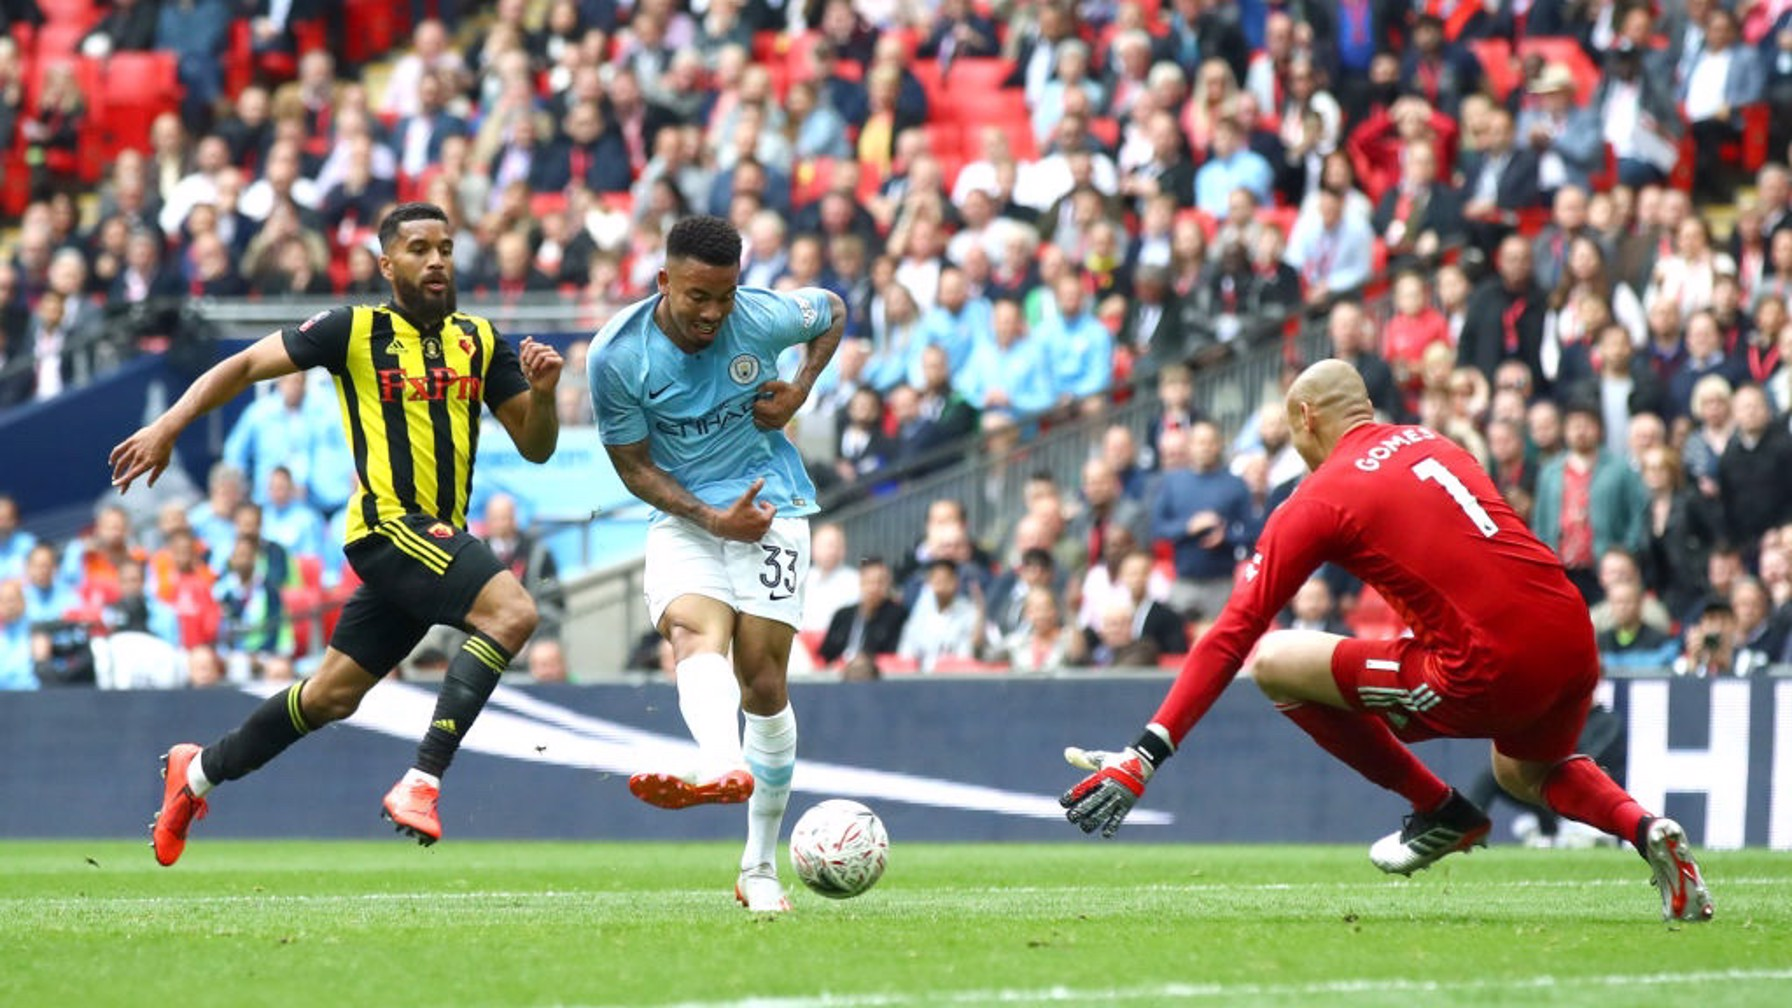 NO DOUBT: There's no questioning who scored City's fourth